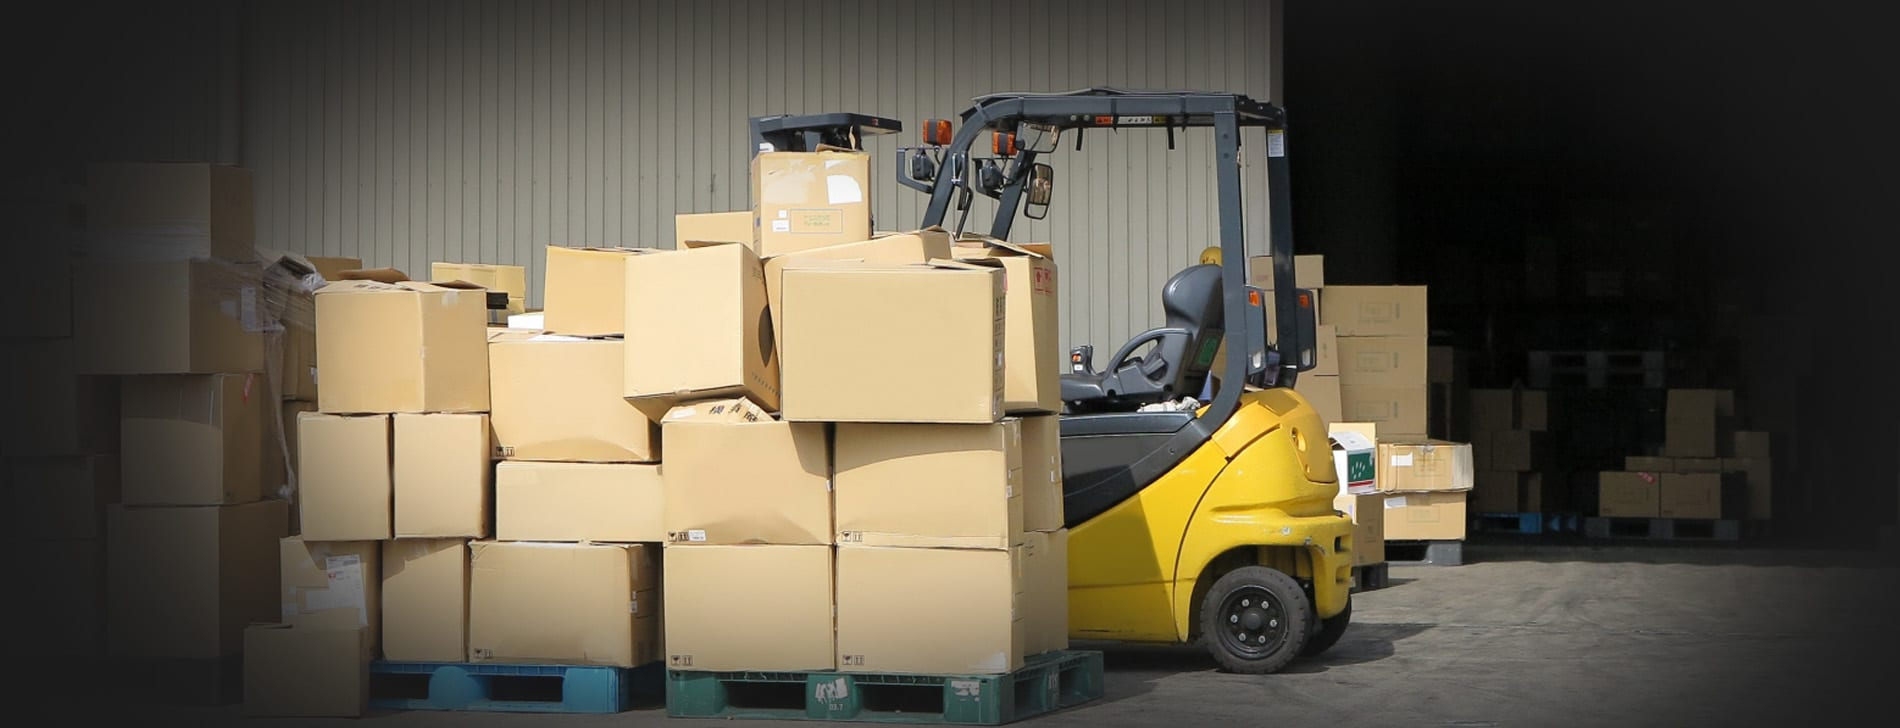 【Semiconductor】Wafer Shipping In Logistics Companies